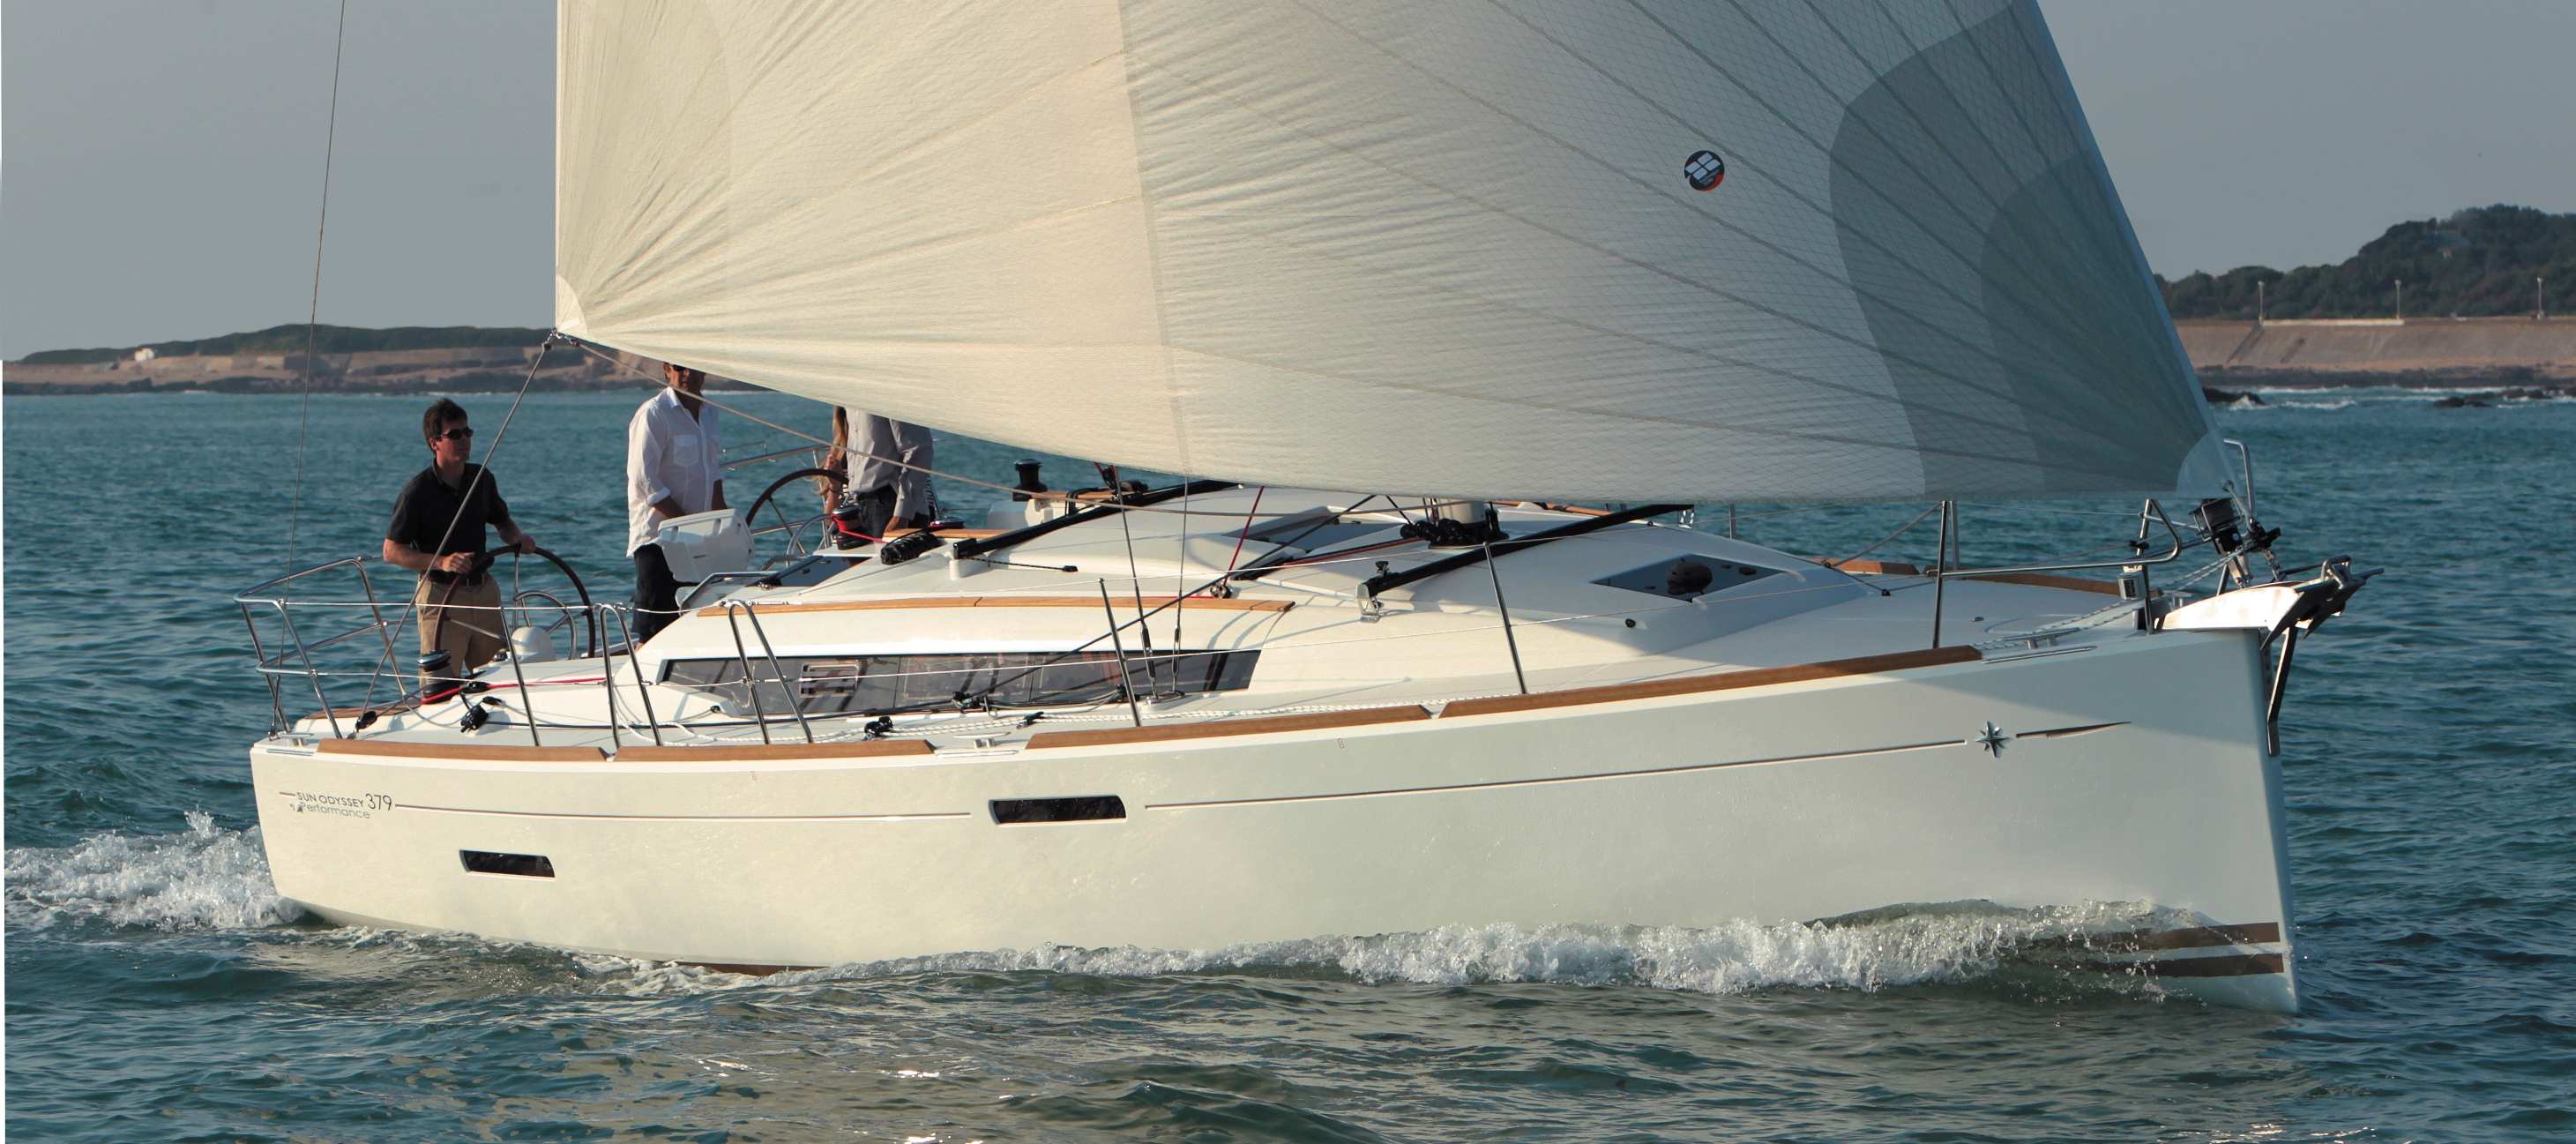 Jeanneau 409 sailing small.jpg